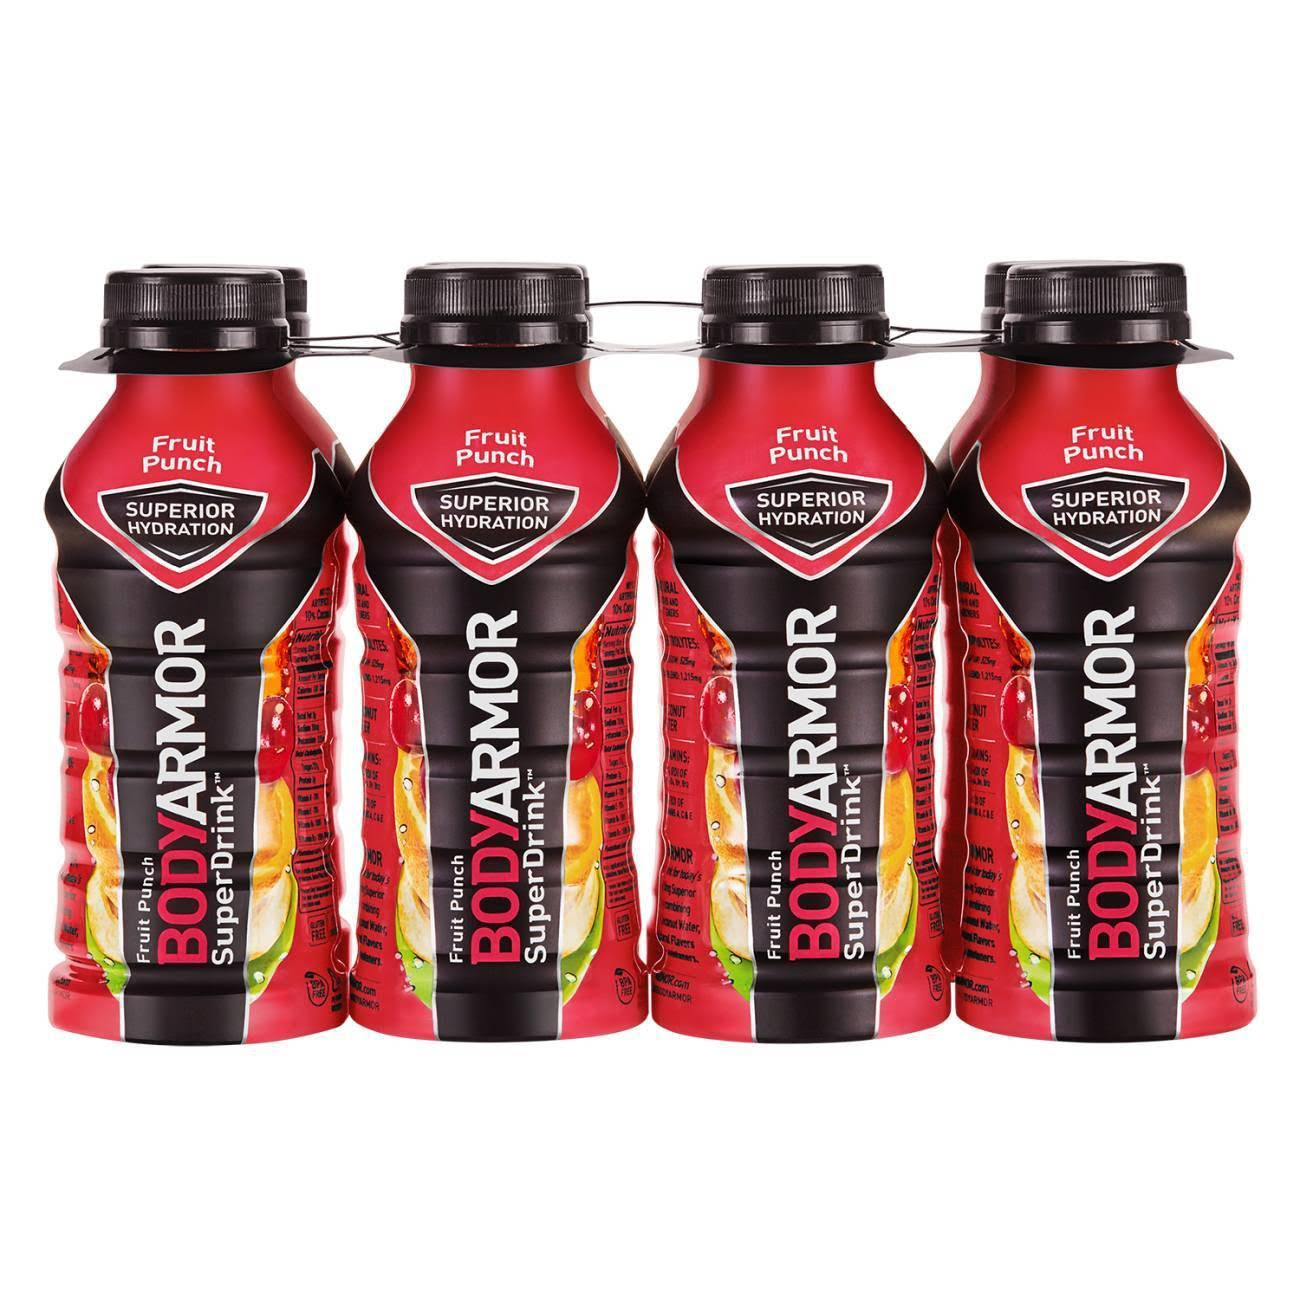 BodyArmor SuperDrink, Fruit Punch - 8 superdrink